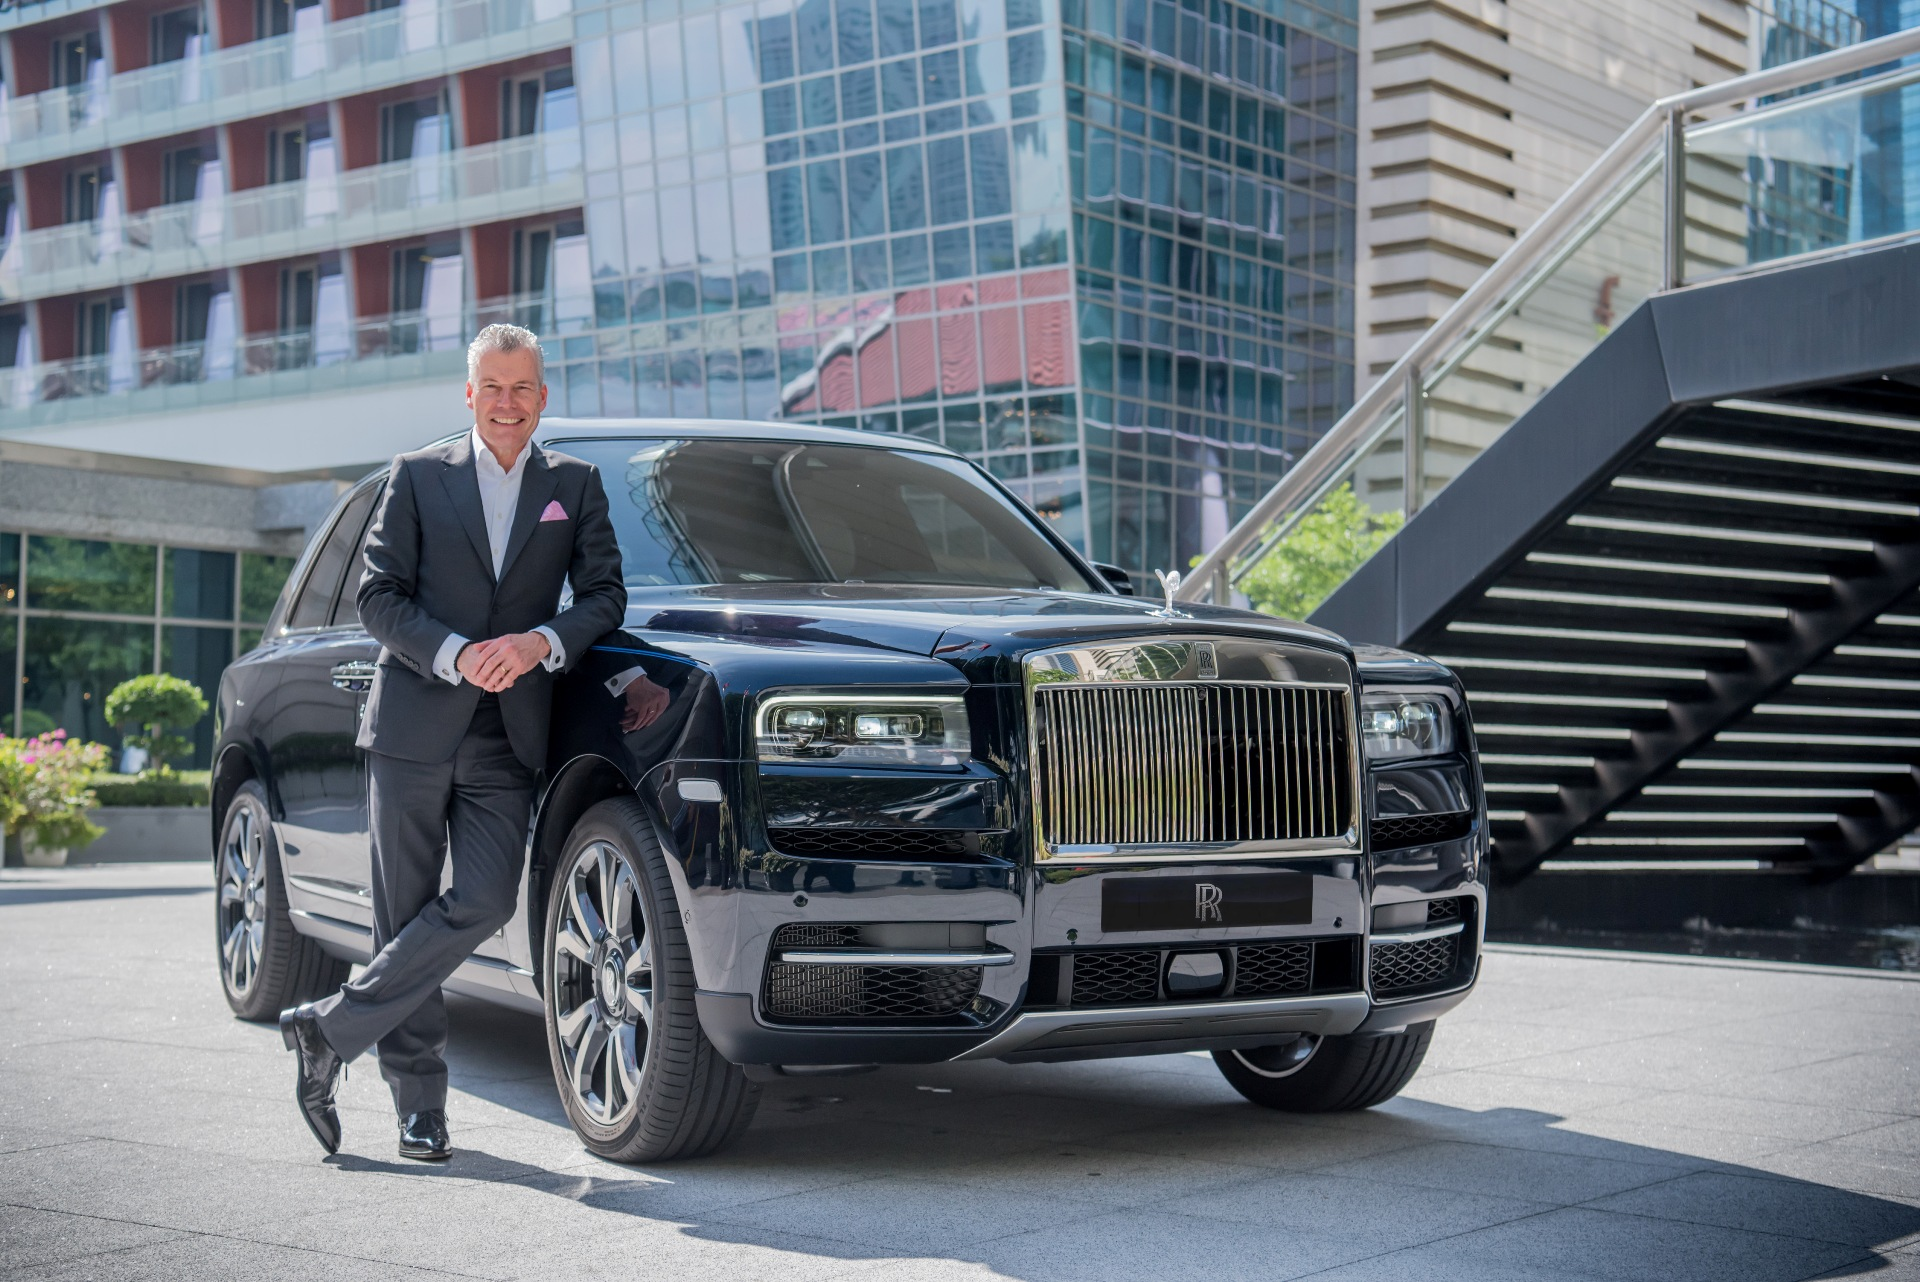 Rolls Royce record breaking 2019 sales 1